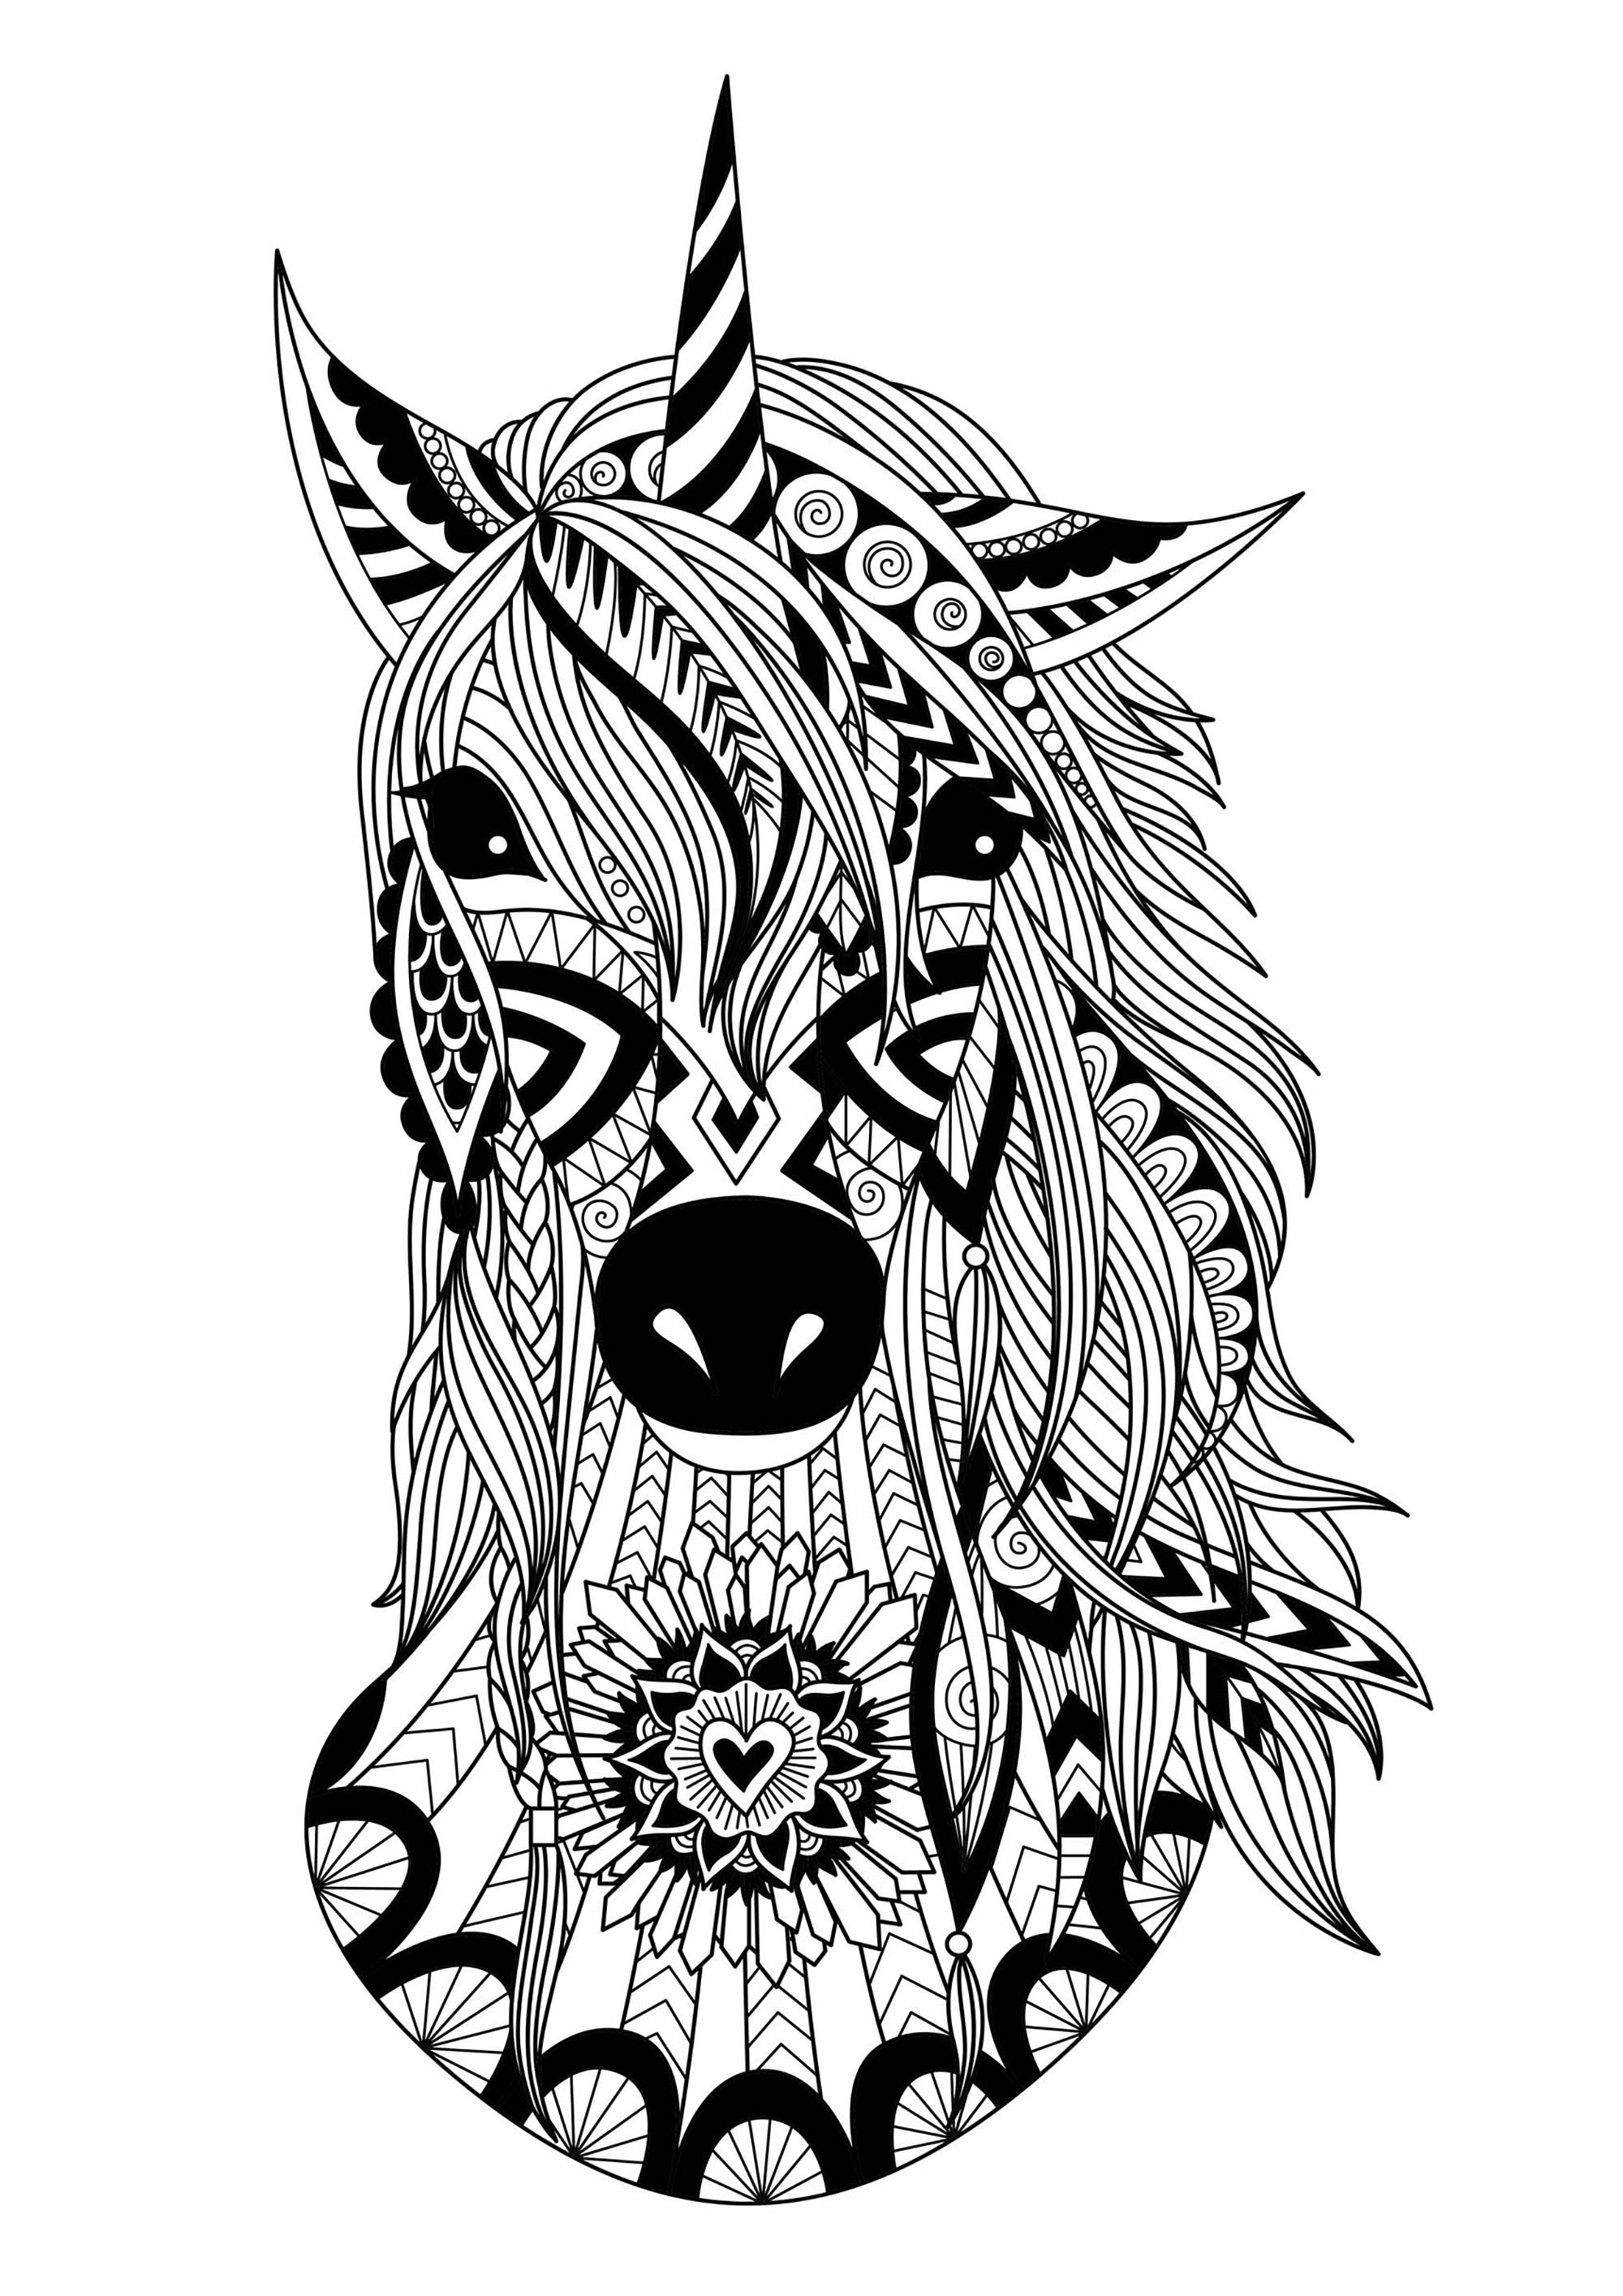 coloring sheet unicorn coloring pictures to print top 7 beautiful coloring unicorn pictures to color print sheet to pictures coloring unicorn coloring